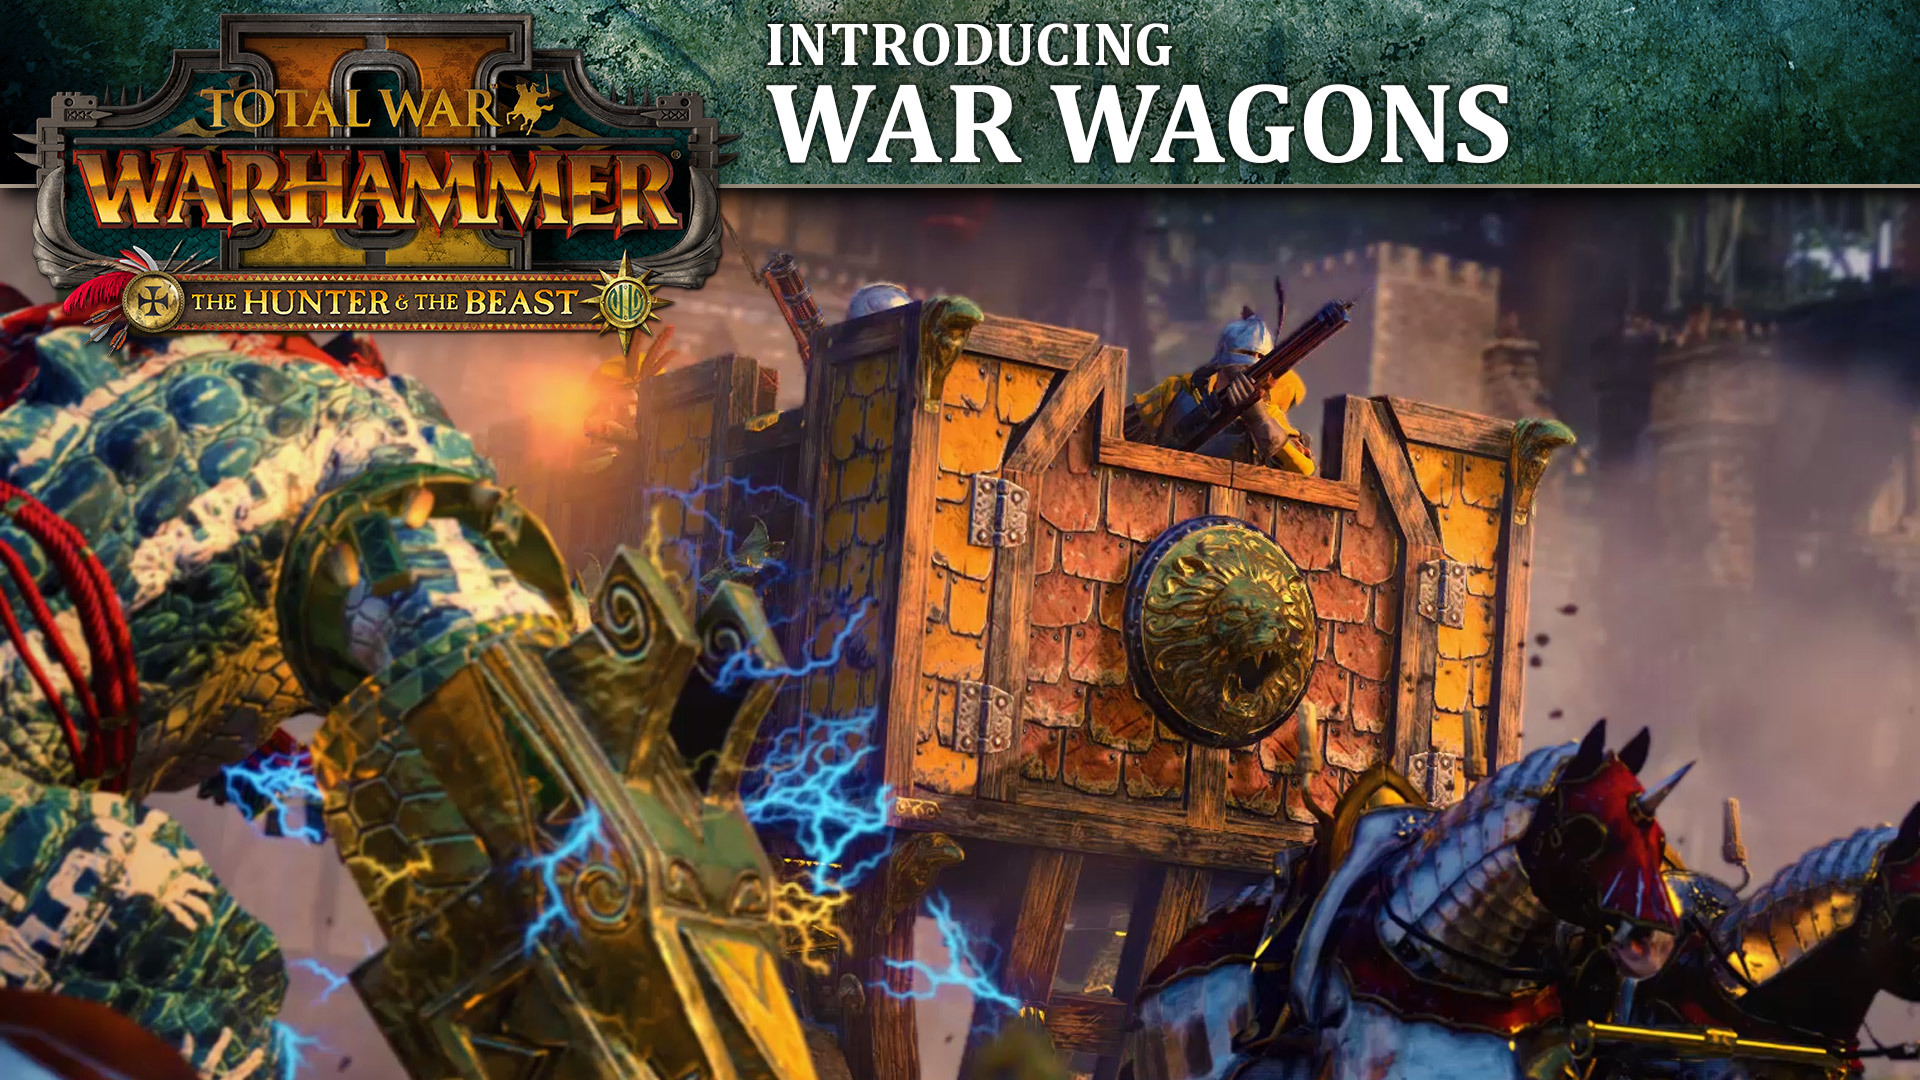 Total War Warhammer Ii Introducing War Wagons Steam News